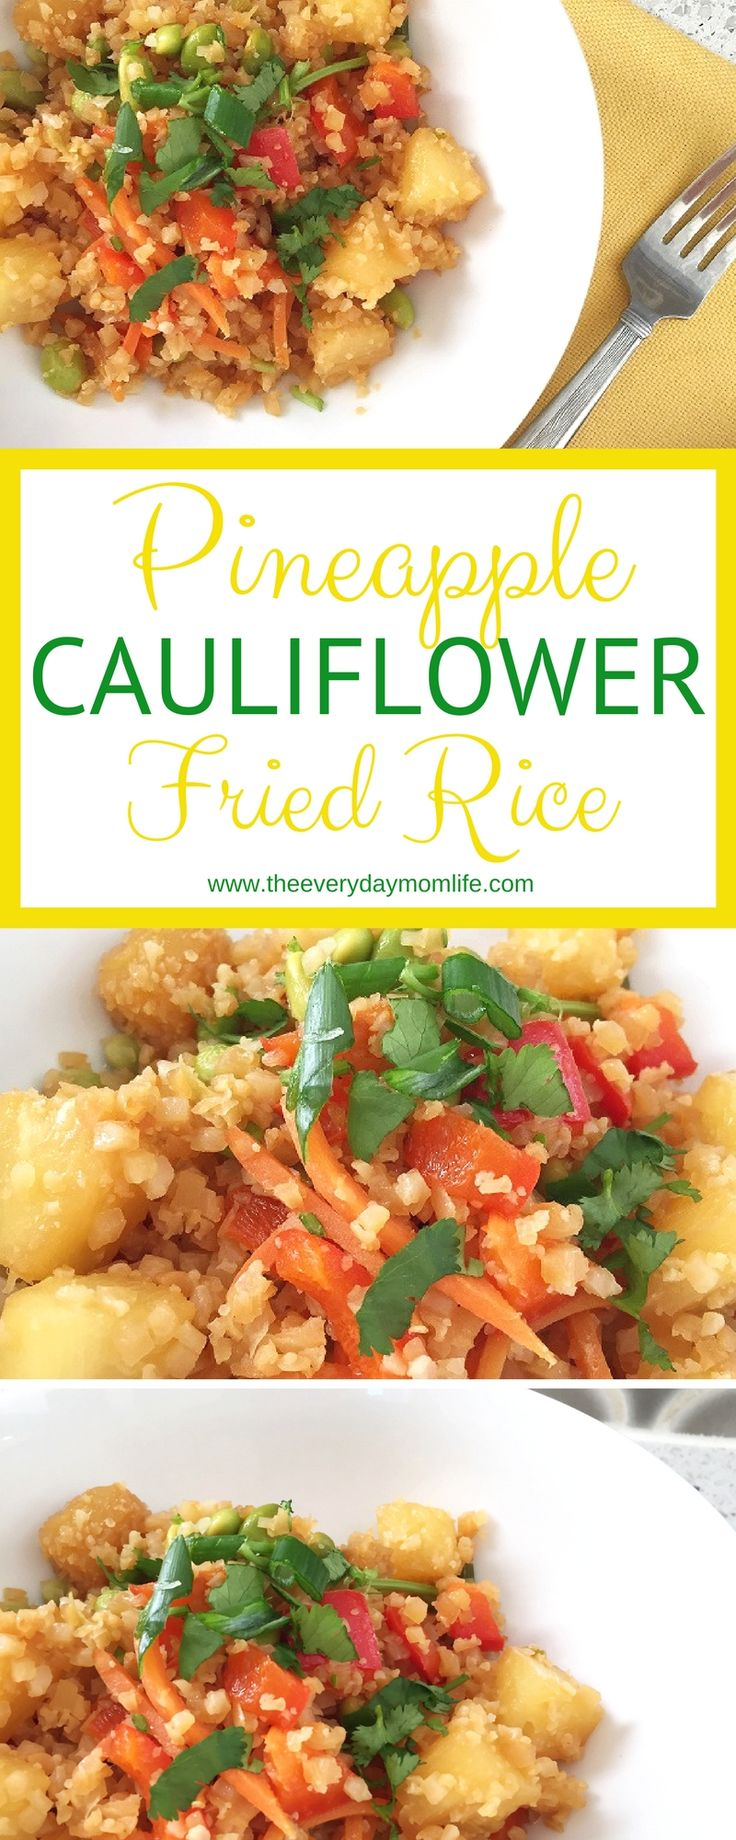 Simple, Delicious Pineapple Cauliflower Rice recipe is perfect when you are trying to go low-carb and reduce calories. Your family will love this recipe! Even the kids!